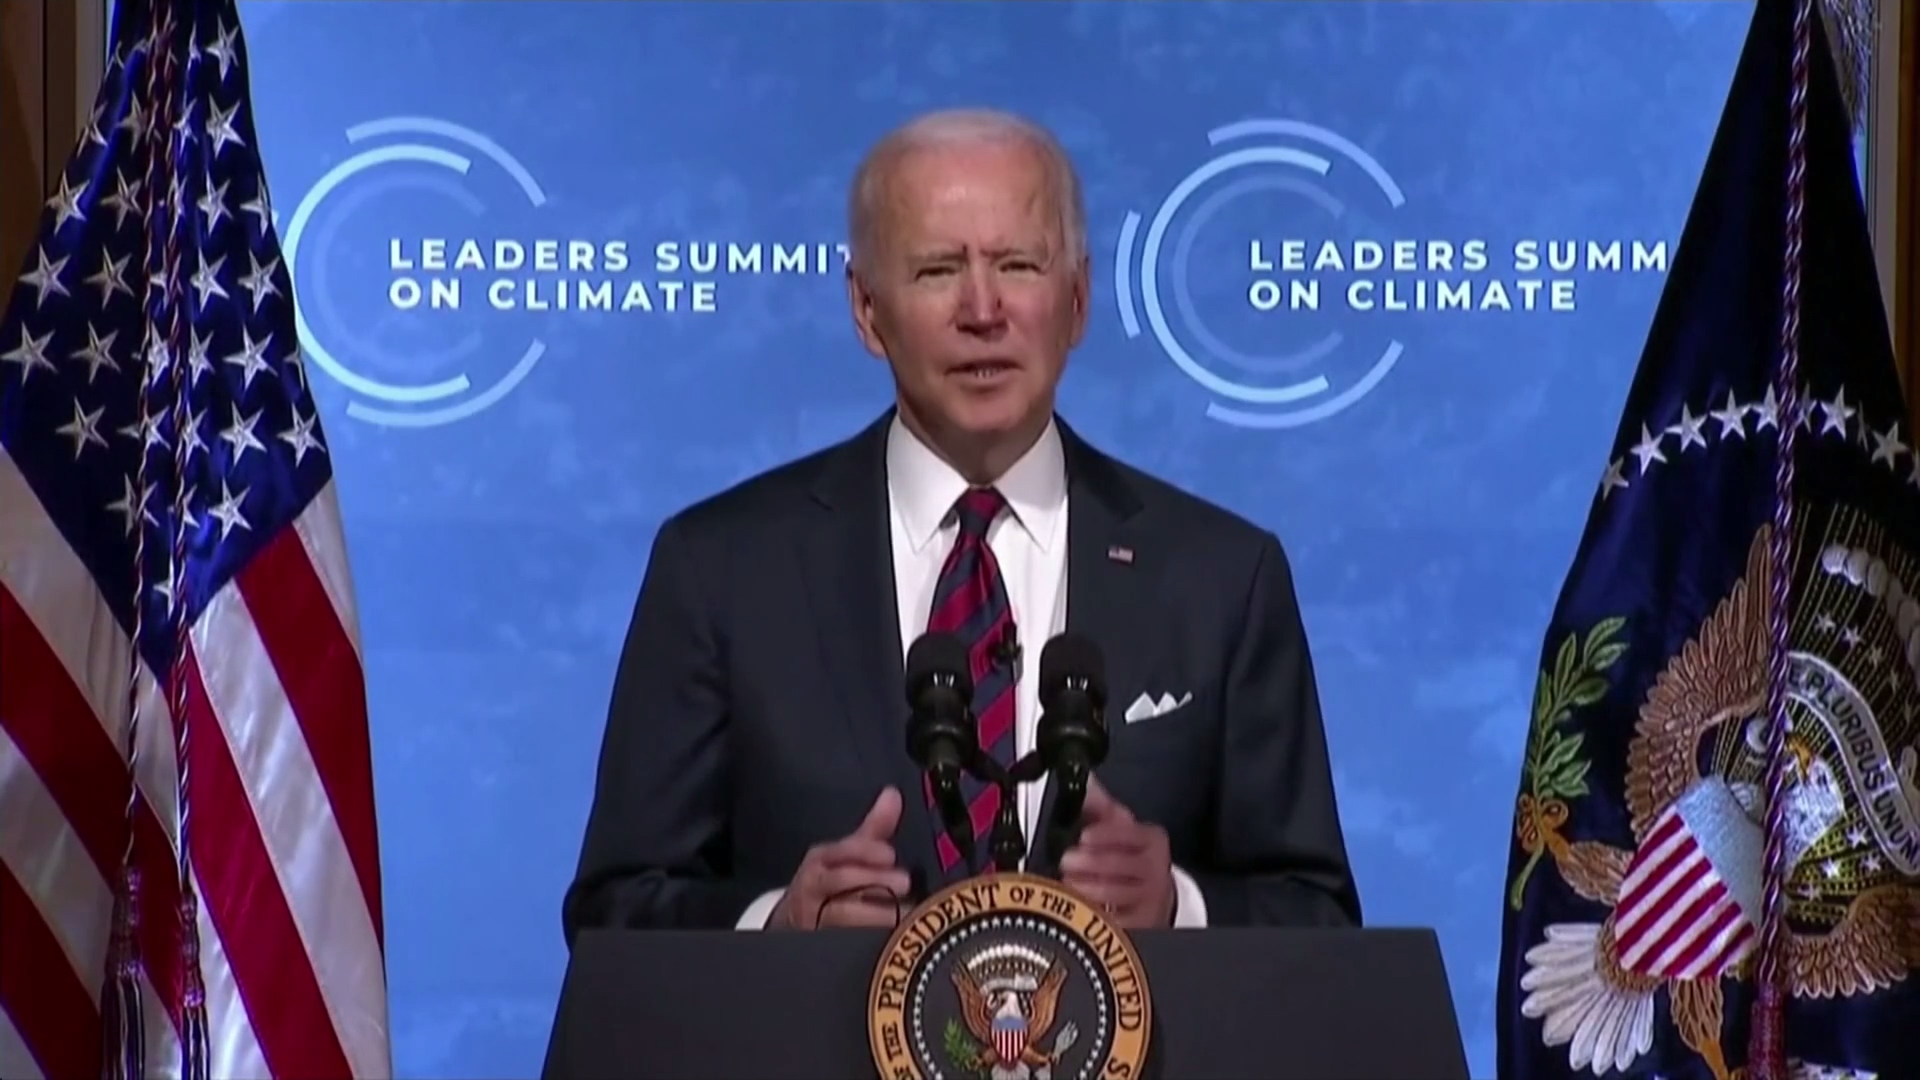 Climate crisis: Biden pledges to cut carbon emissions – but will it make a difference?